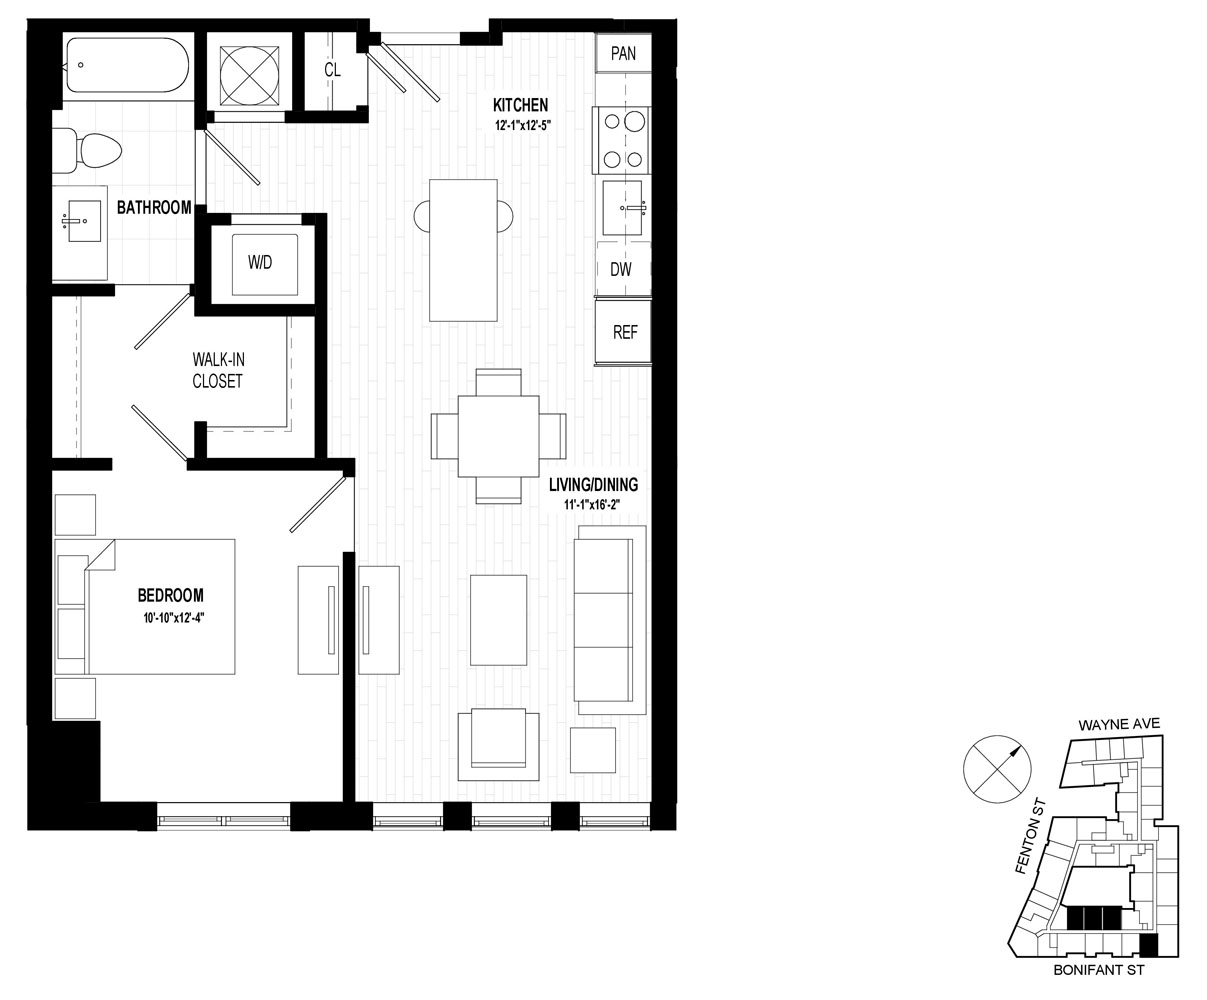 P0578887 761aa17 central a06 681 2 floorplan